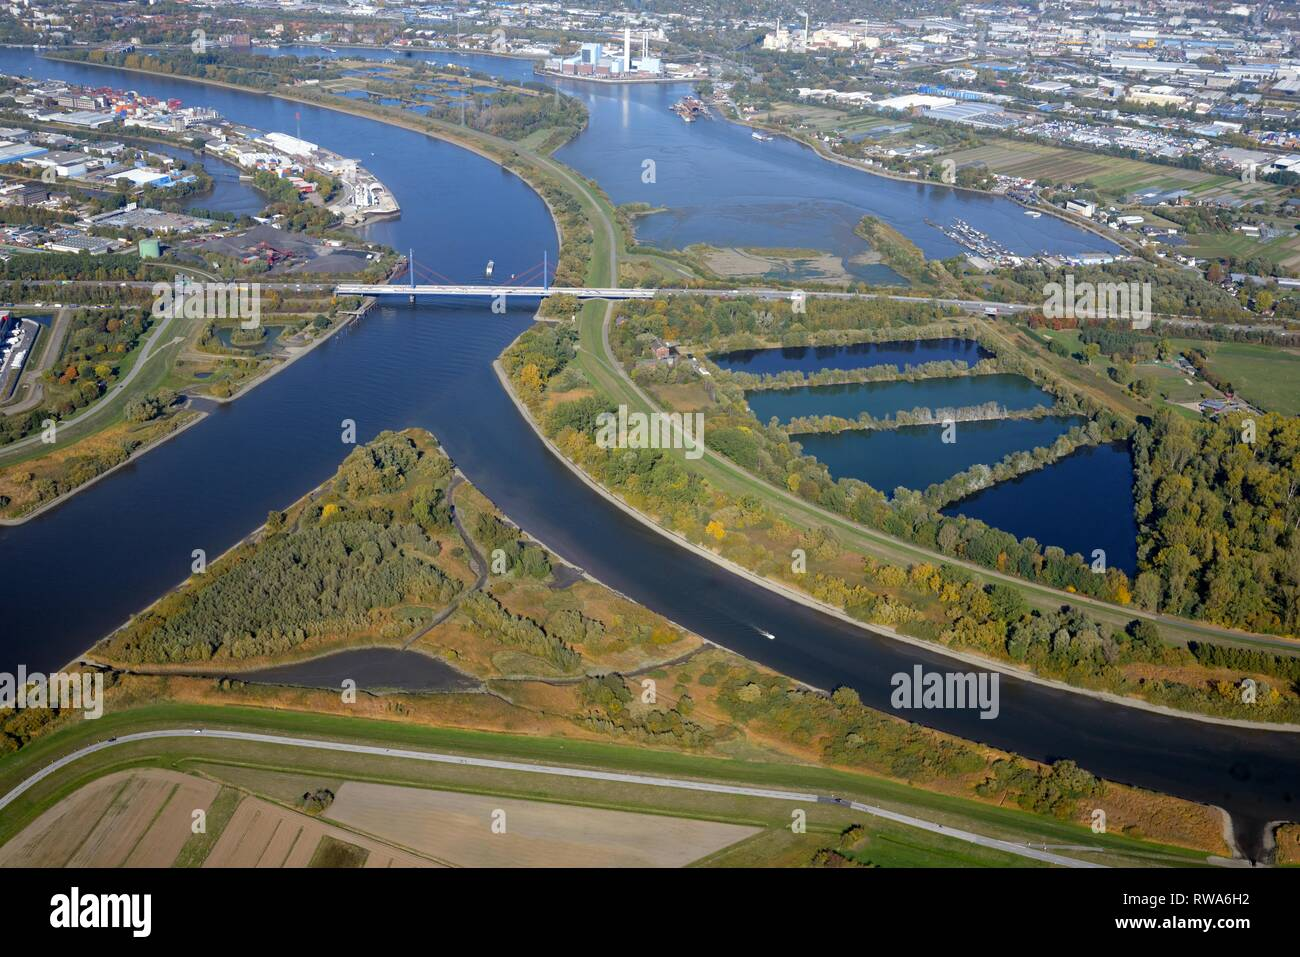 Aerial view, Compensation areas on the Elbe, Hamburg, Germany - Stock Image